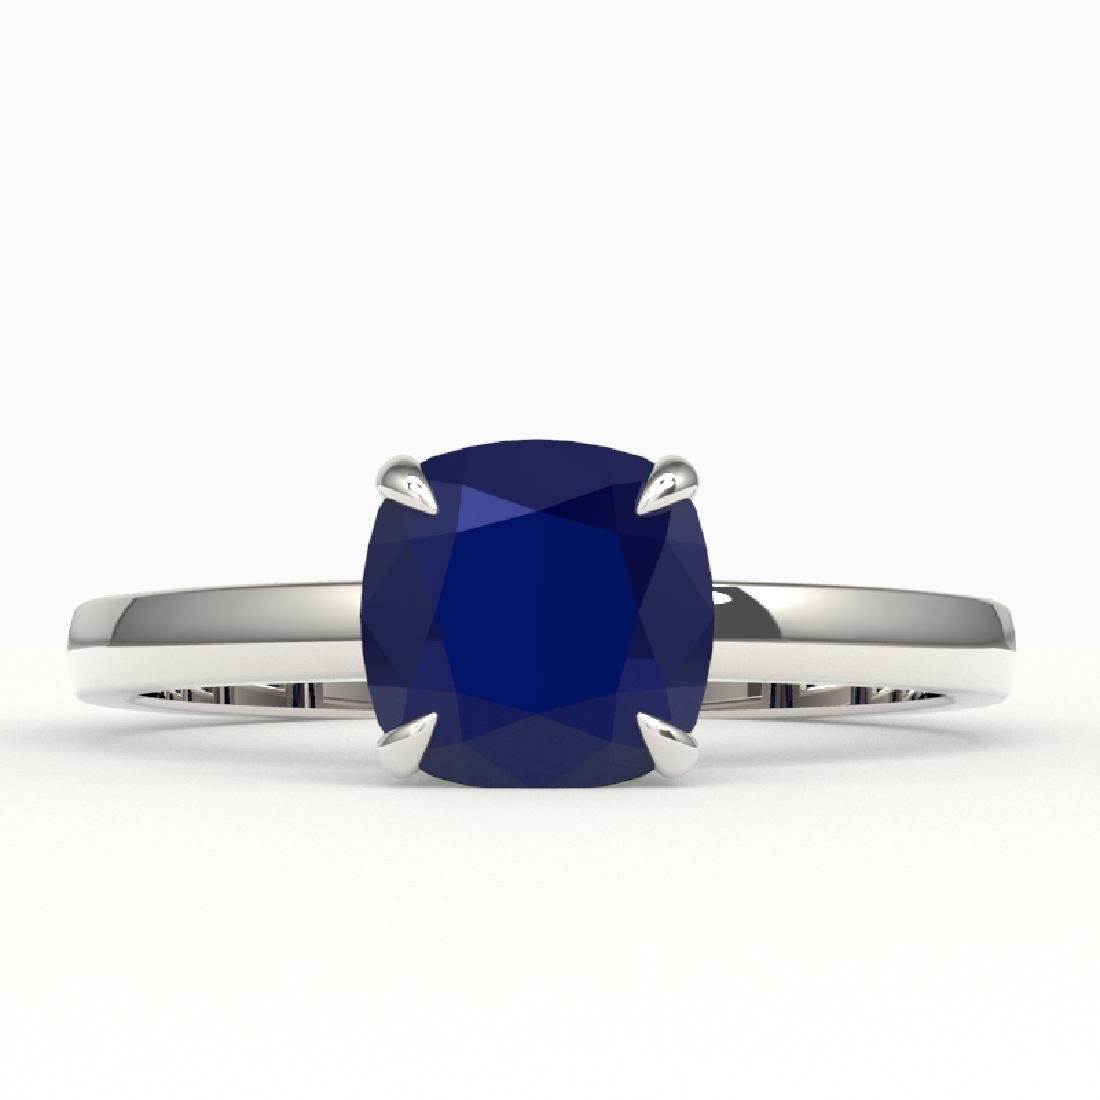 2 CTW Cushion Cut Sapphire Solitaire Engagement Ring